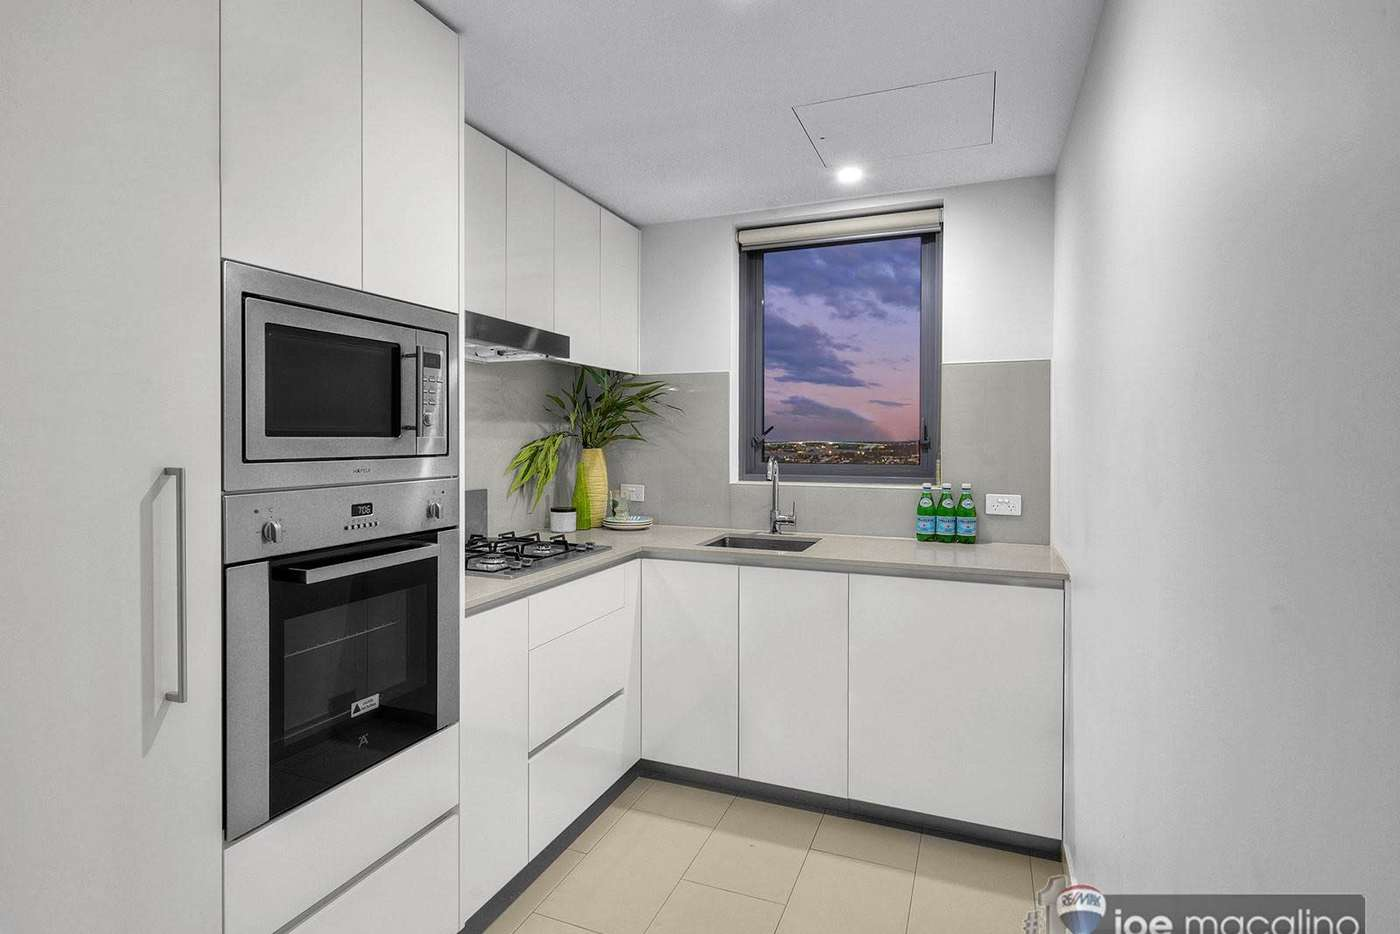 Sixth view of Homely unit listing, 35 Campbell St, Bowen Hills QLD 4006